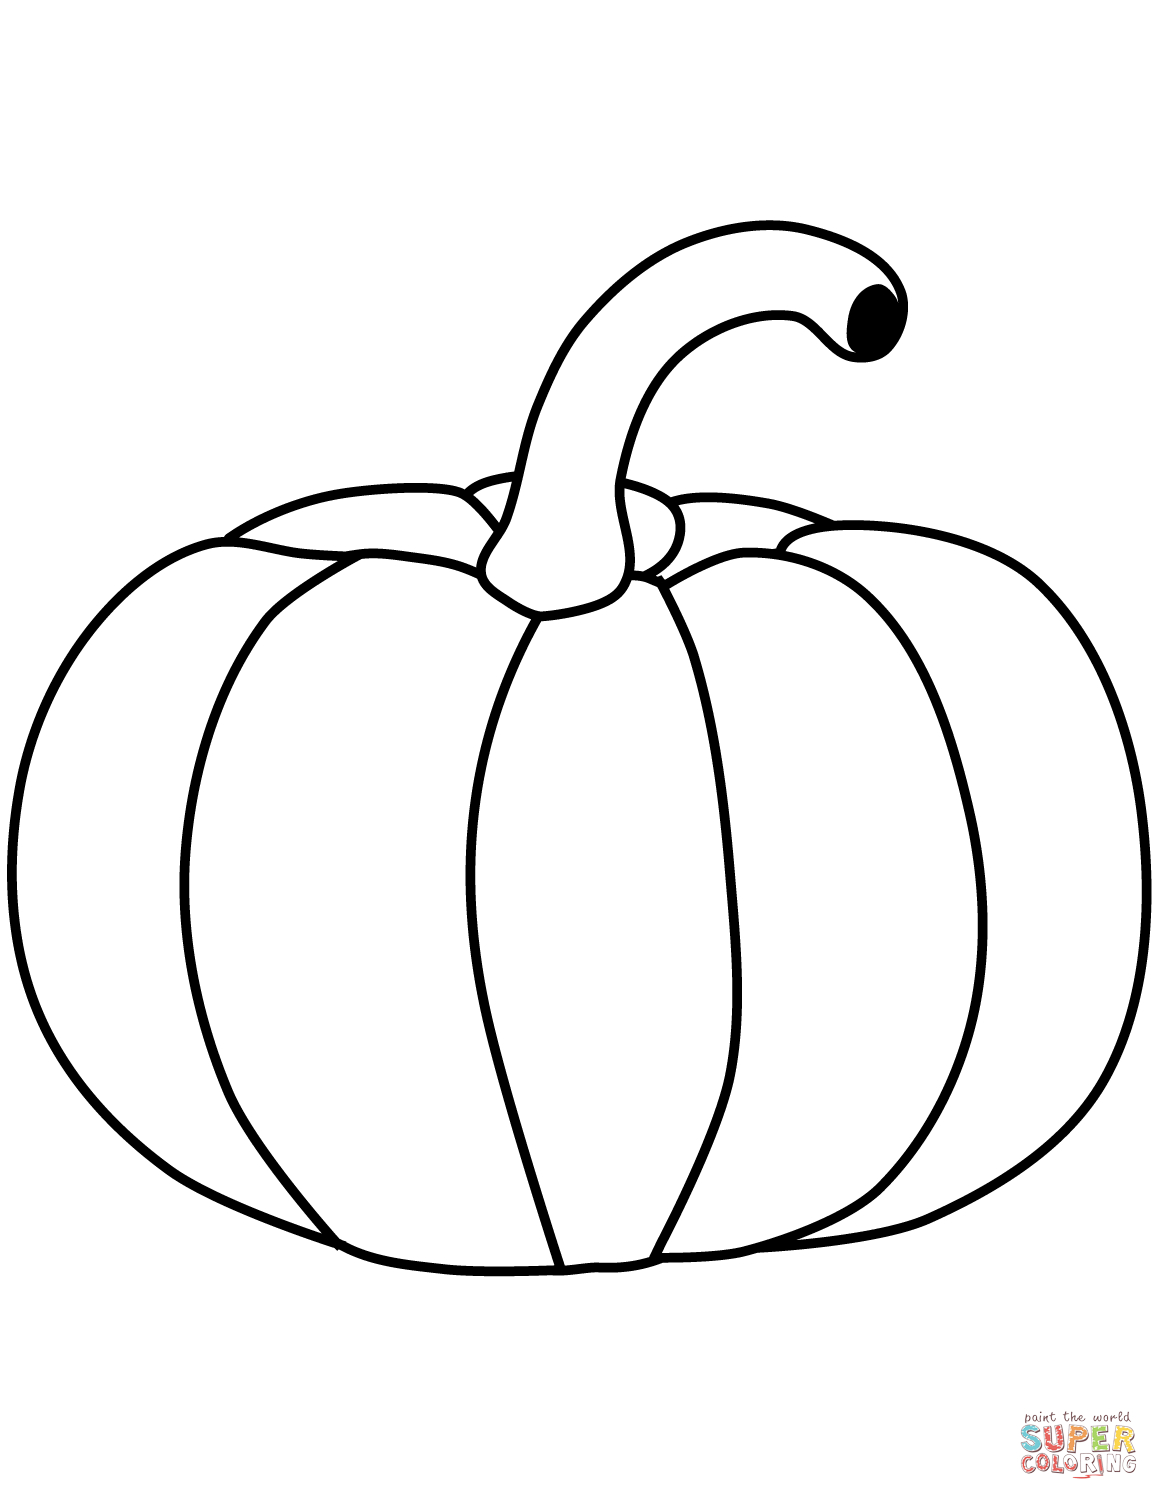 Printable Pumpkin Coloring Pages Pumpkin Coloring Page Free Printable Coloring Pages